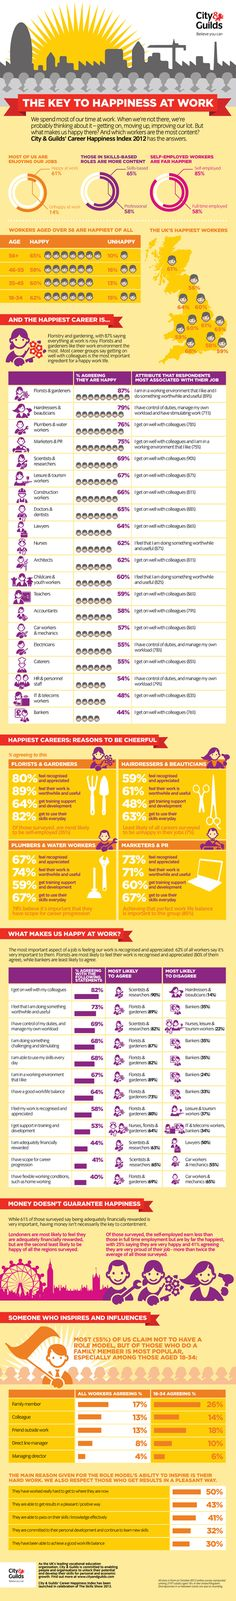 Career Happiness Index 2012 #infographic - insights into what people in the UK consider to be the most important factors contributing to their happiness at work. Of those surveyed, gardeners & florists topped the list of happiest workers, followed by hairdressers & plumbers. Meanwhile, bankers, IT professionals & #HR workers are the least happy.